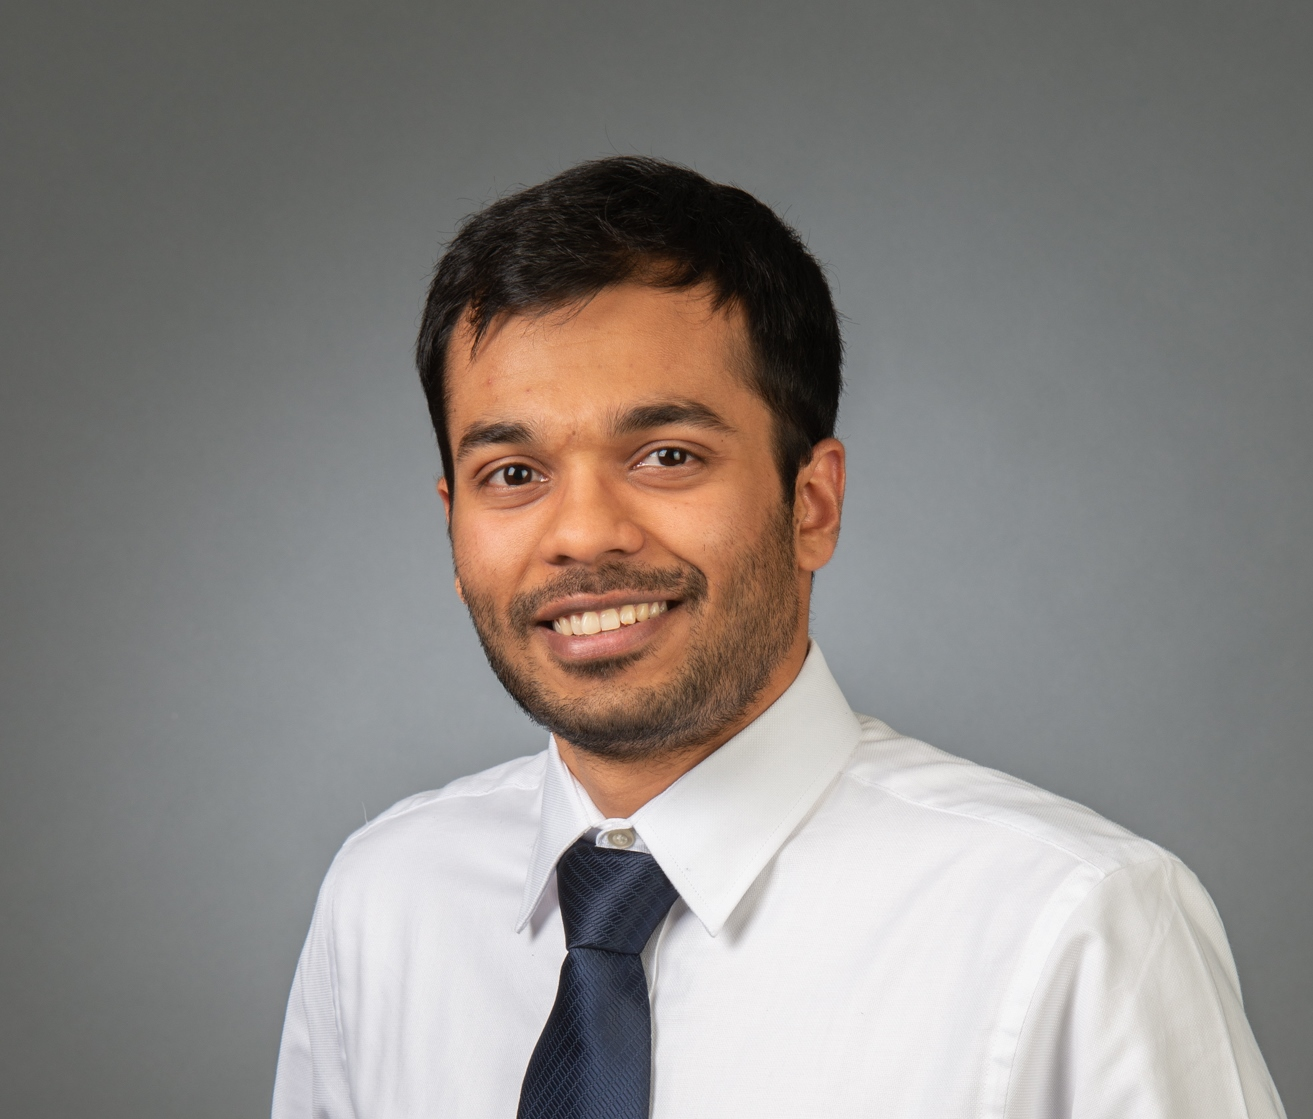 Engineers Week 2020: Mechanical Engineer, Nishank Shah, LEED GA, Credits his Love of Math and Science, Since Childhood, as Inspiration for Pursuing Engineering